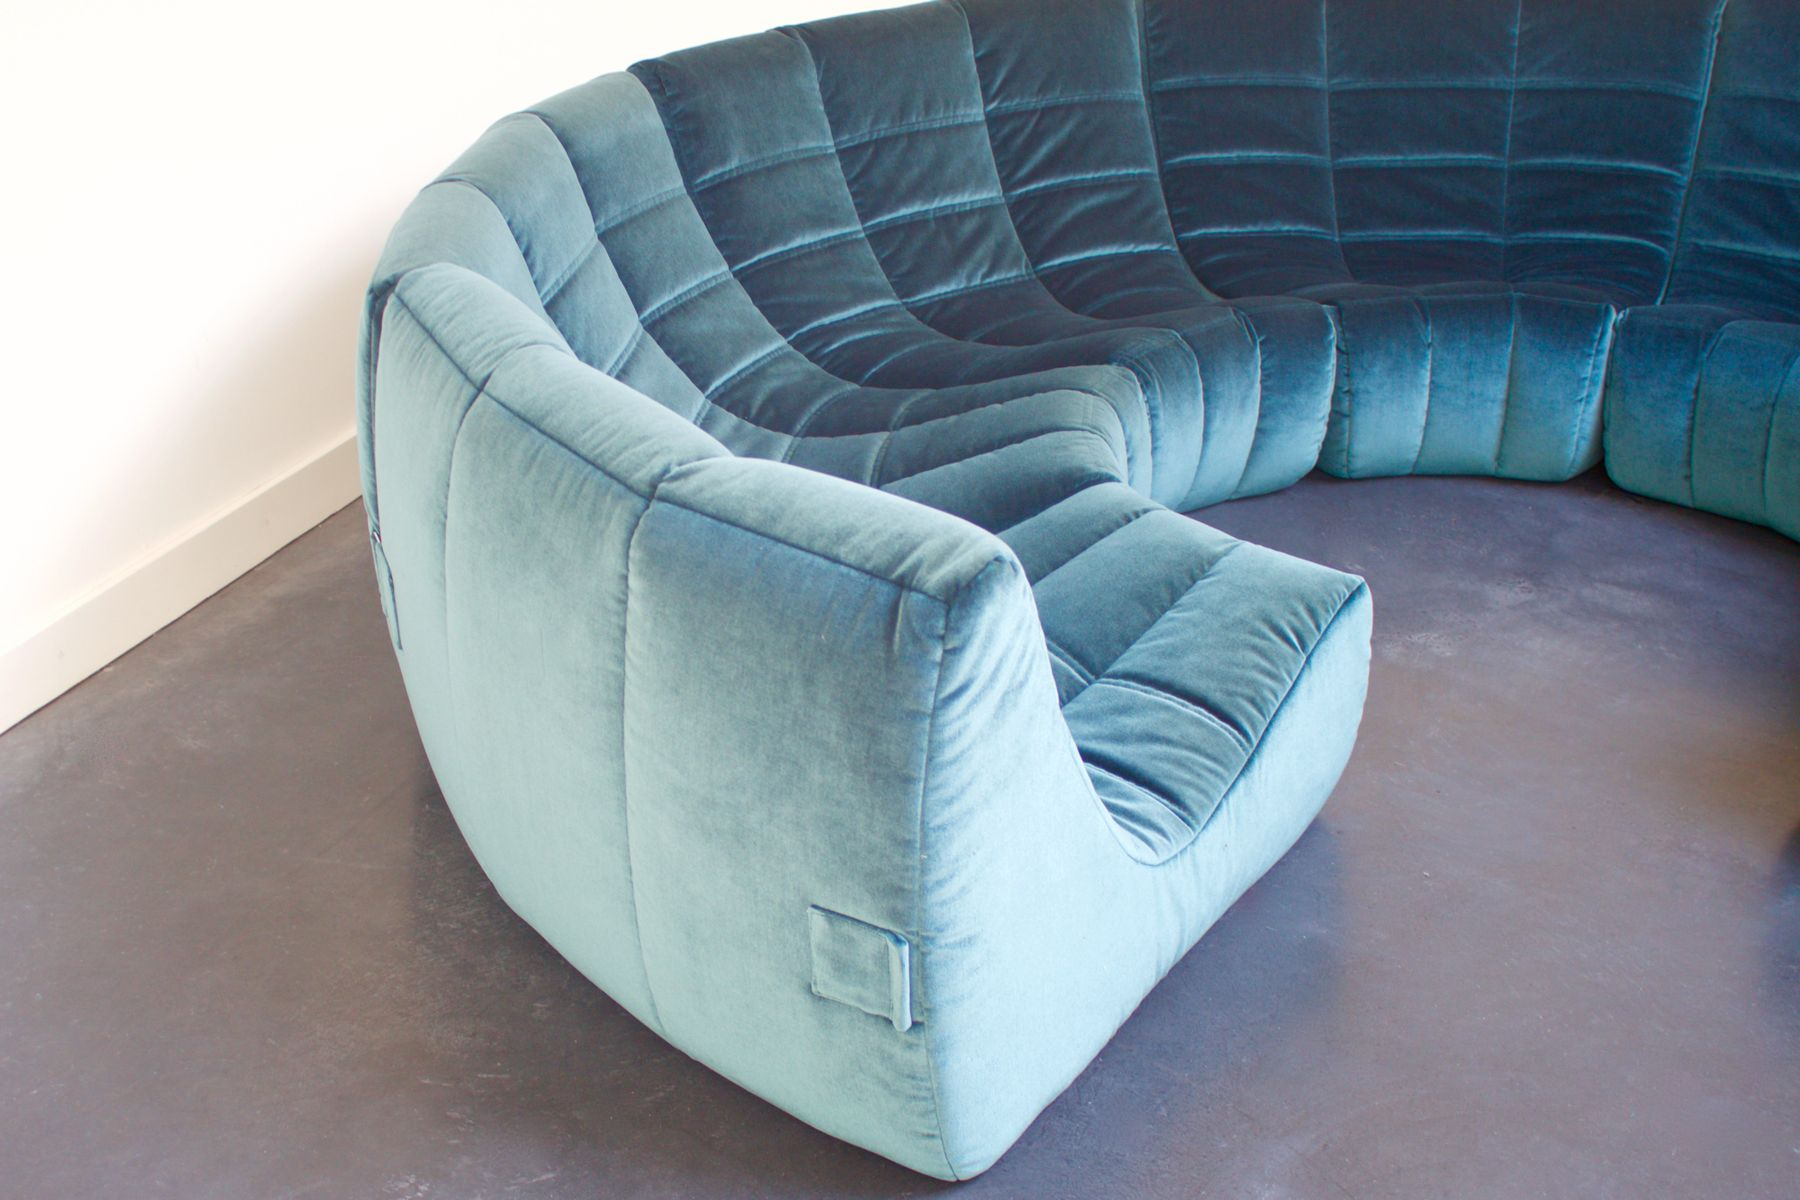 Gilda Circle Sofa by Michel Ducaroy for Roset 1972 for sale at Pamono